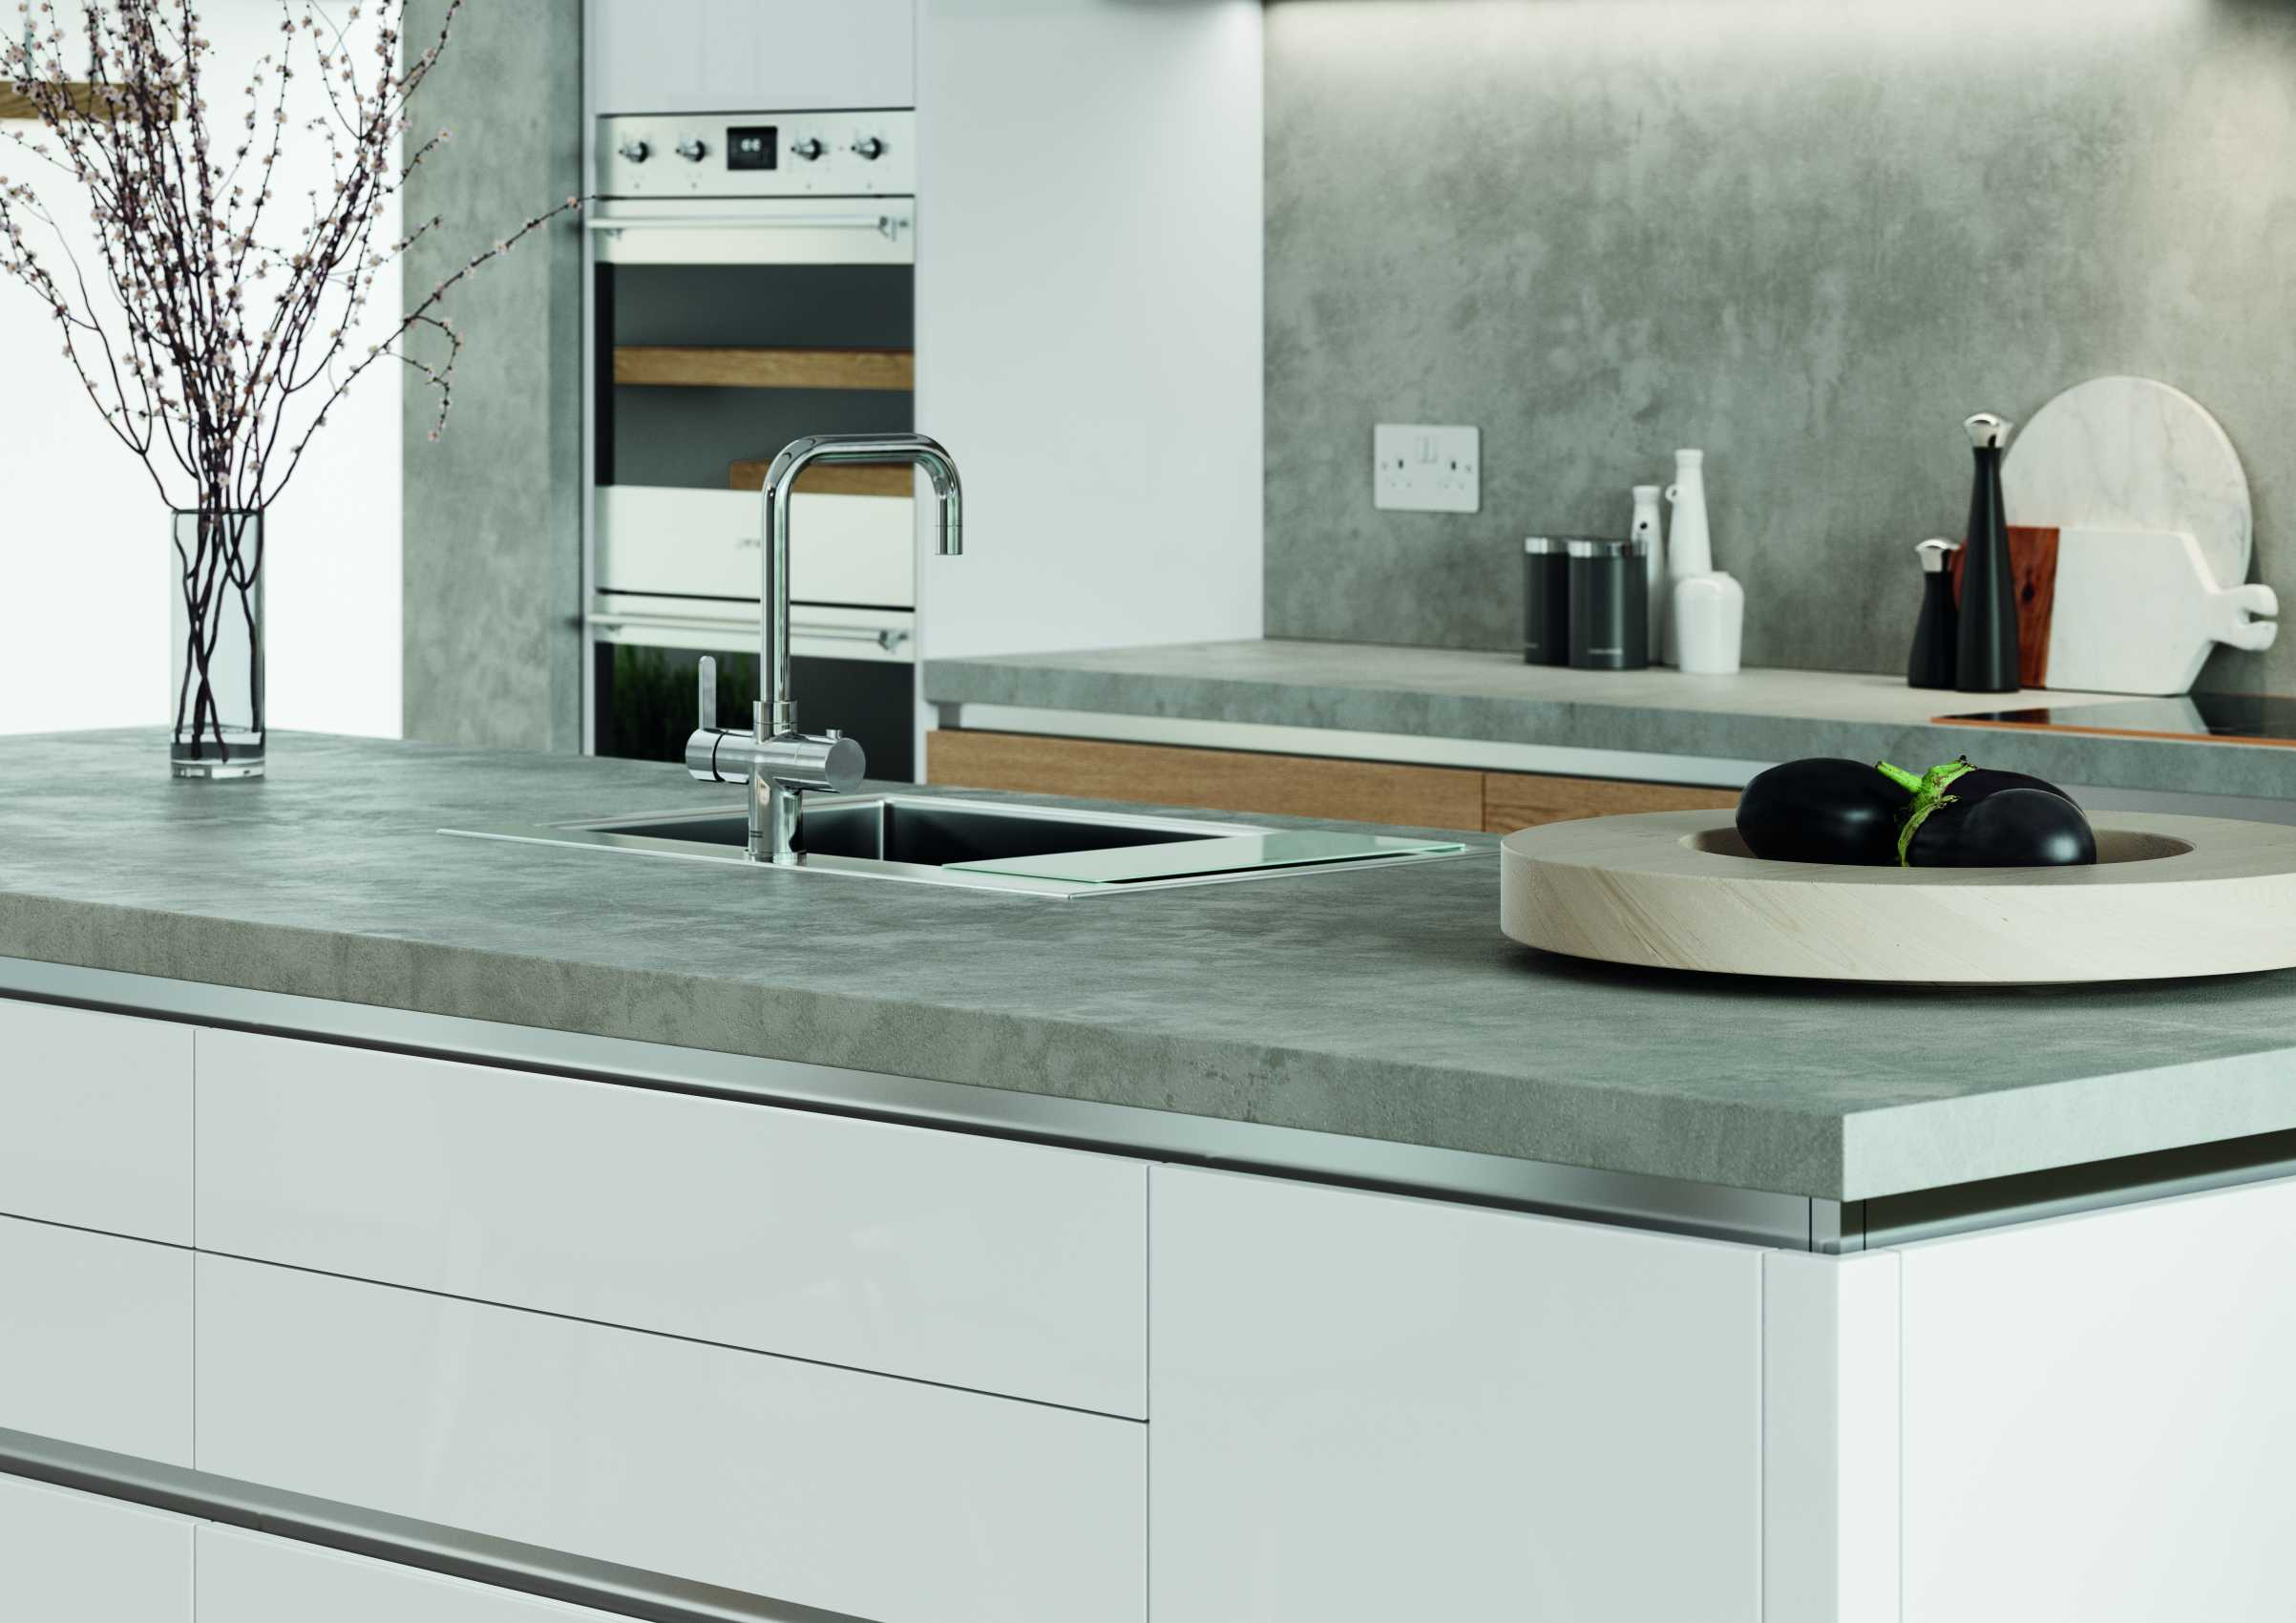 gloss white and parched oak modern kitchen worktop sink